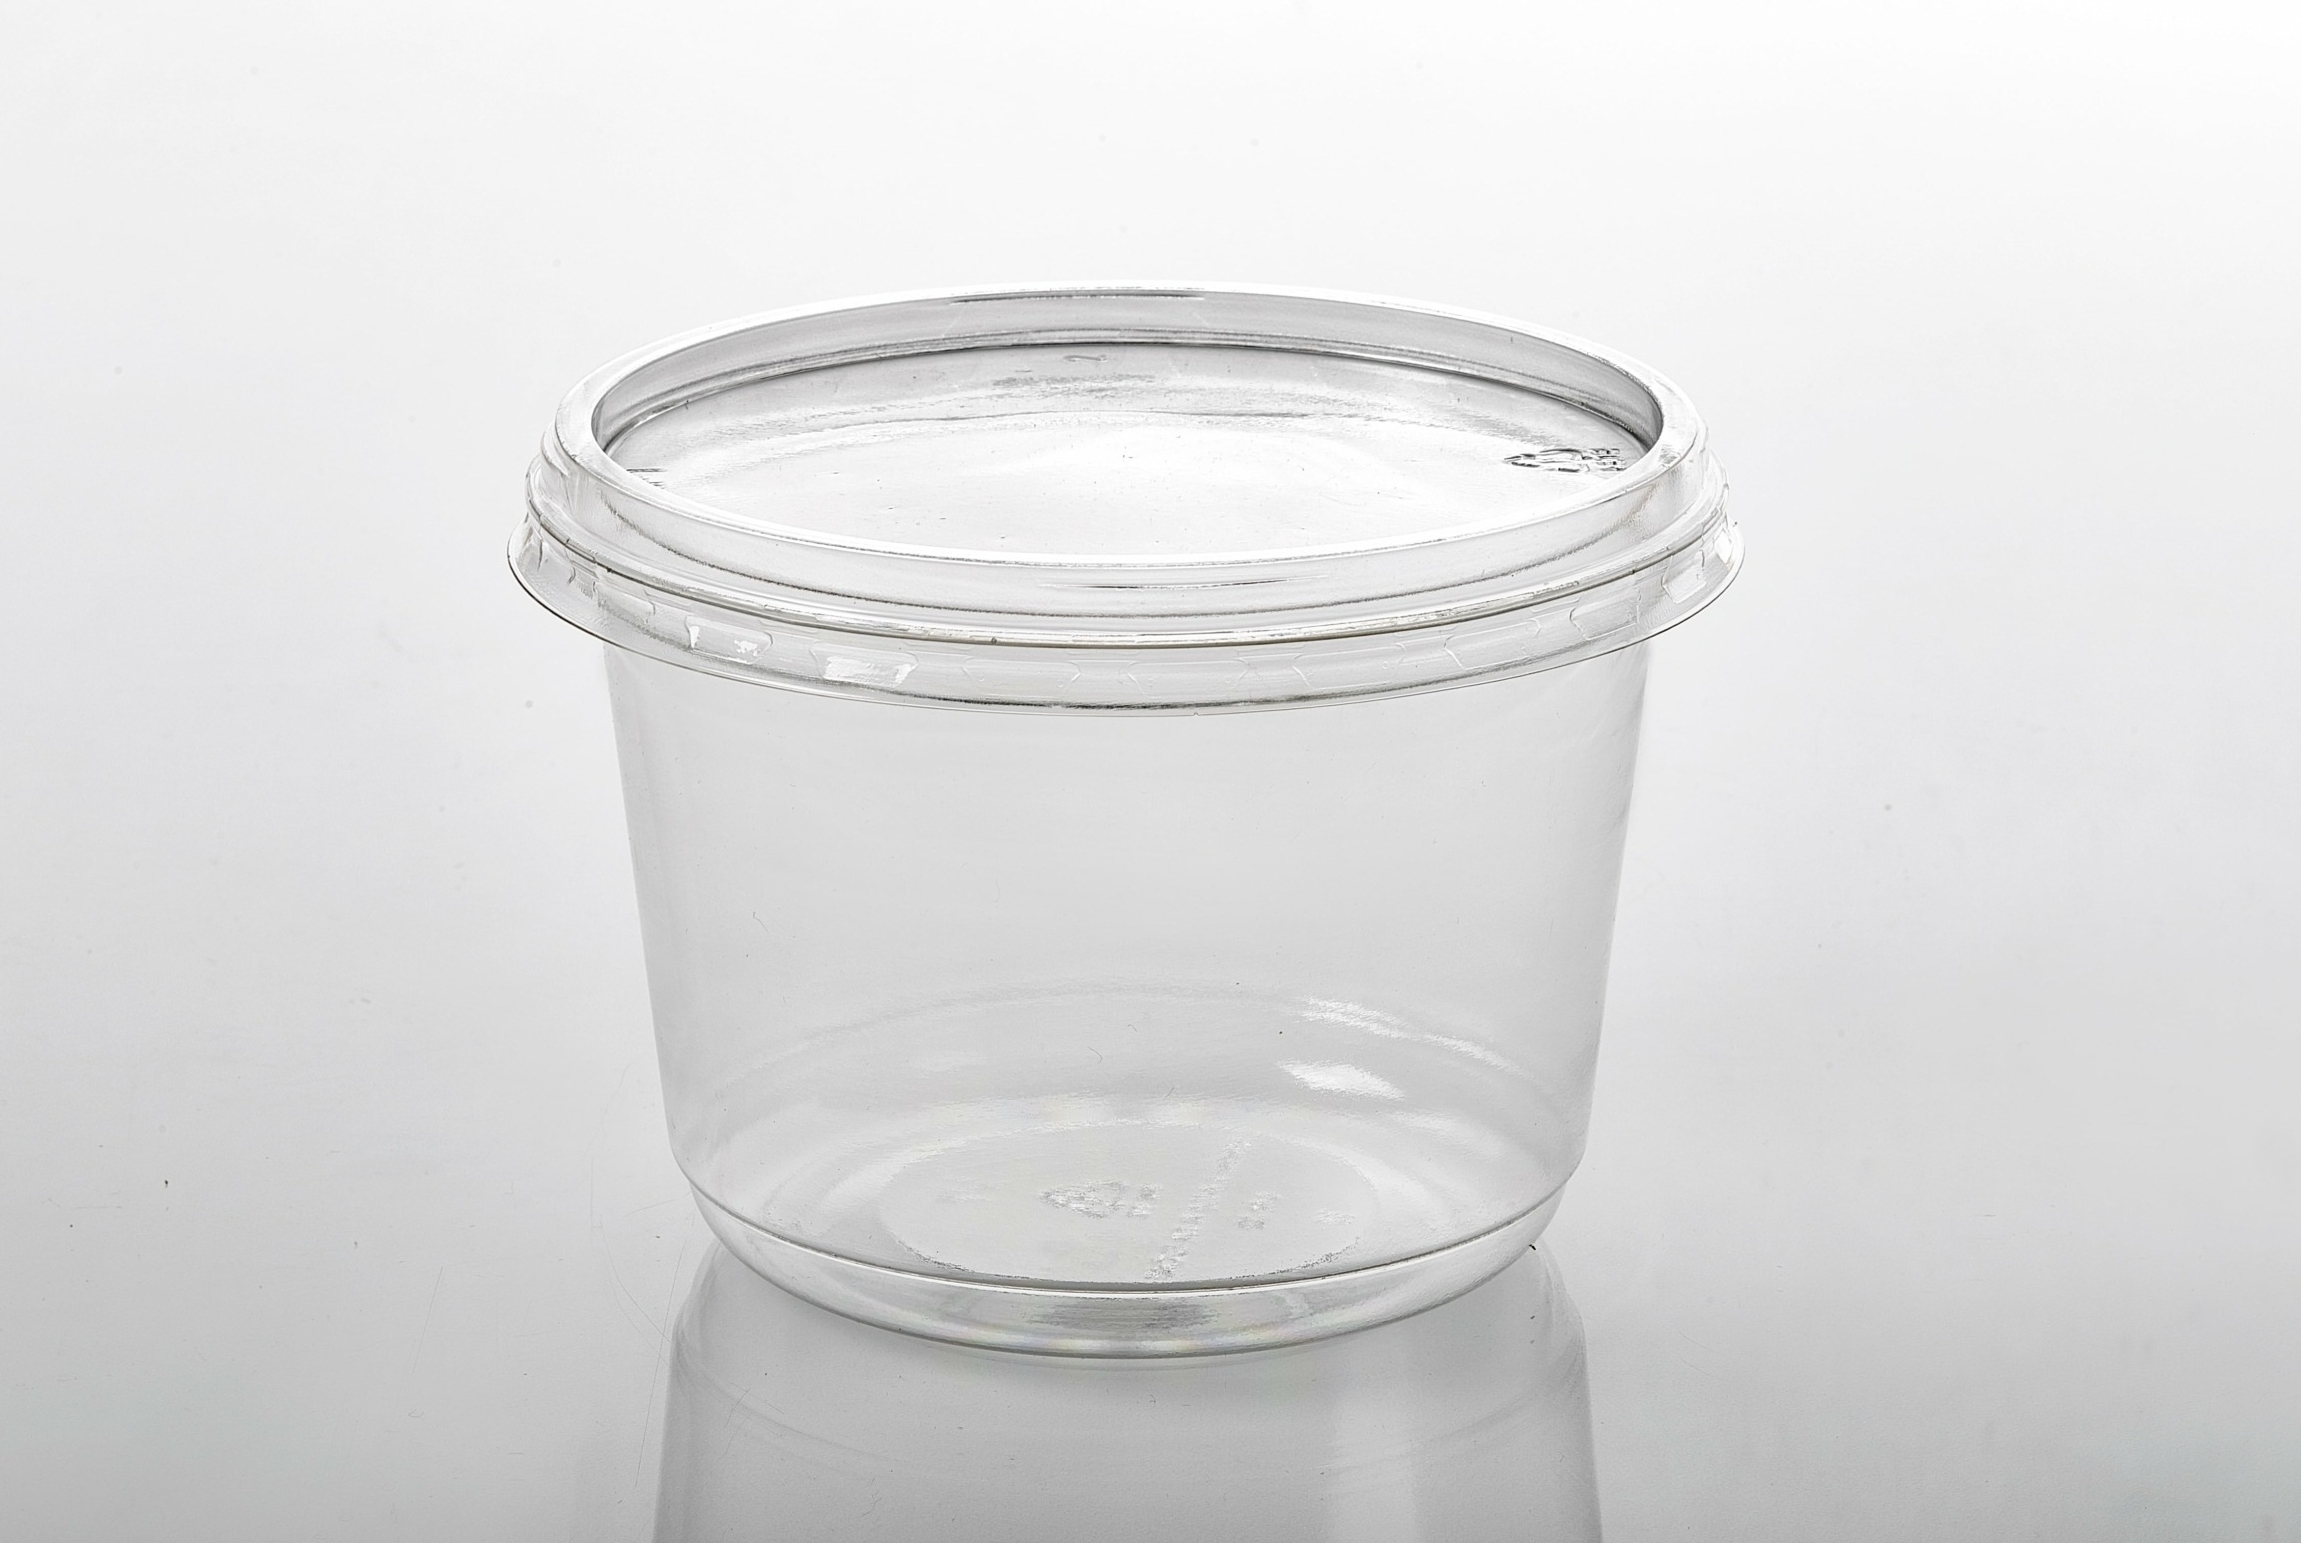 T502 LR 32 with Clear Lid